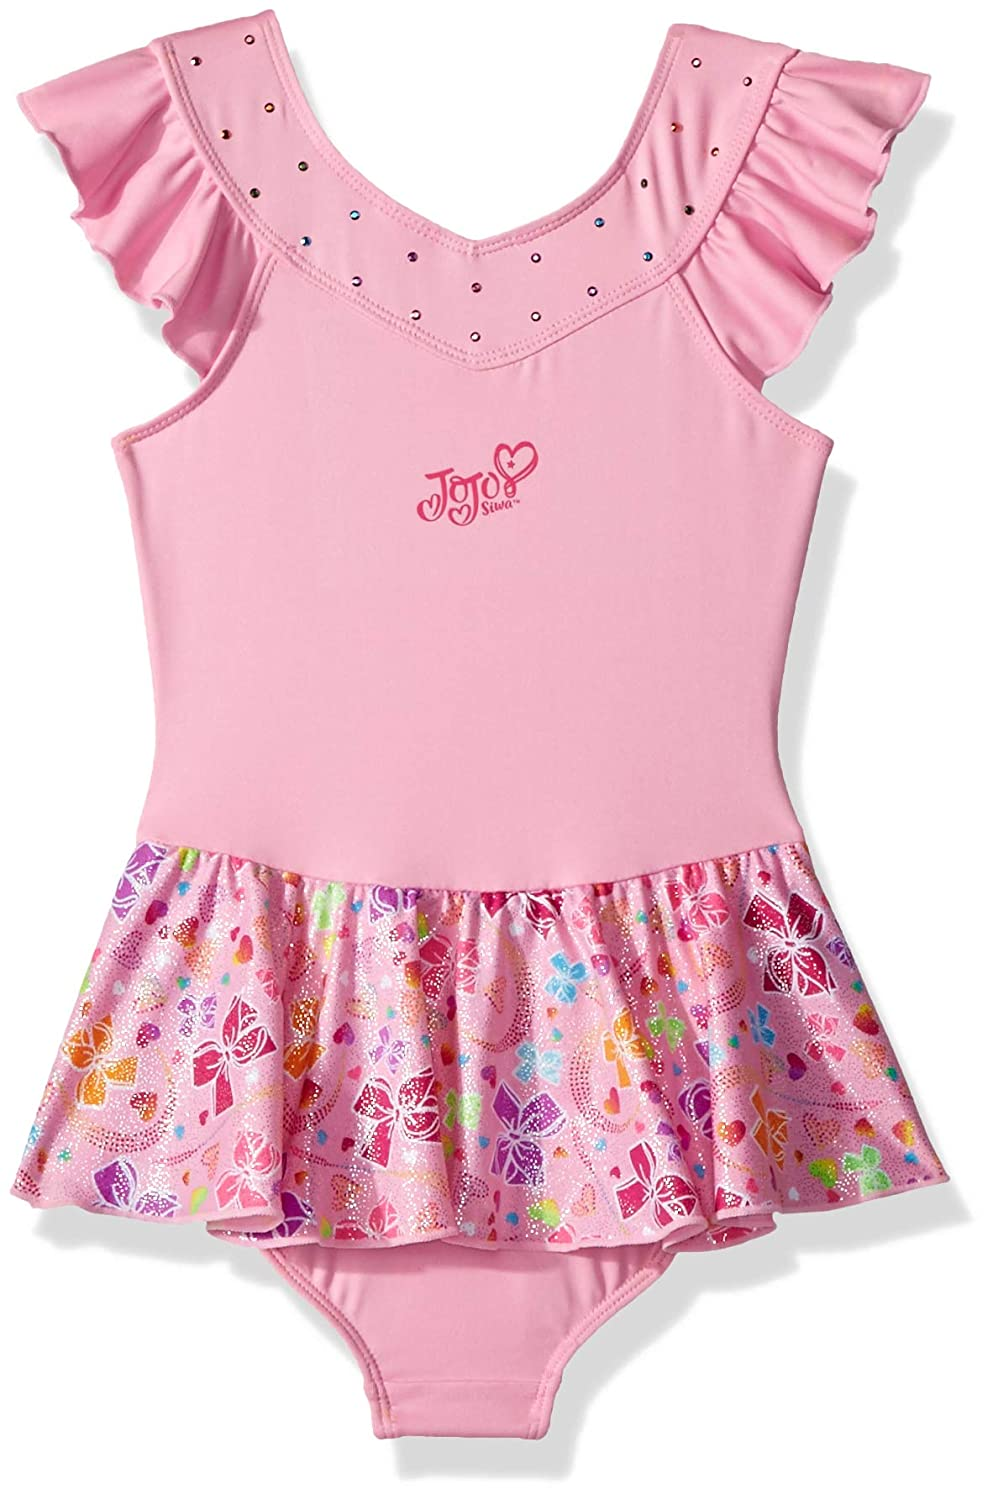 Jojo Siwa By Danskin Girls Big Rainbow Bows Dance Dress